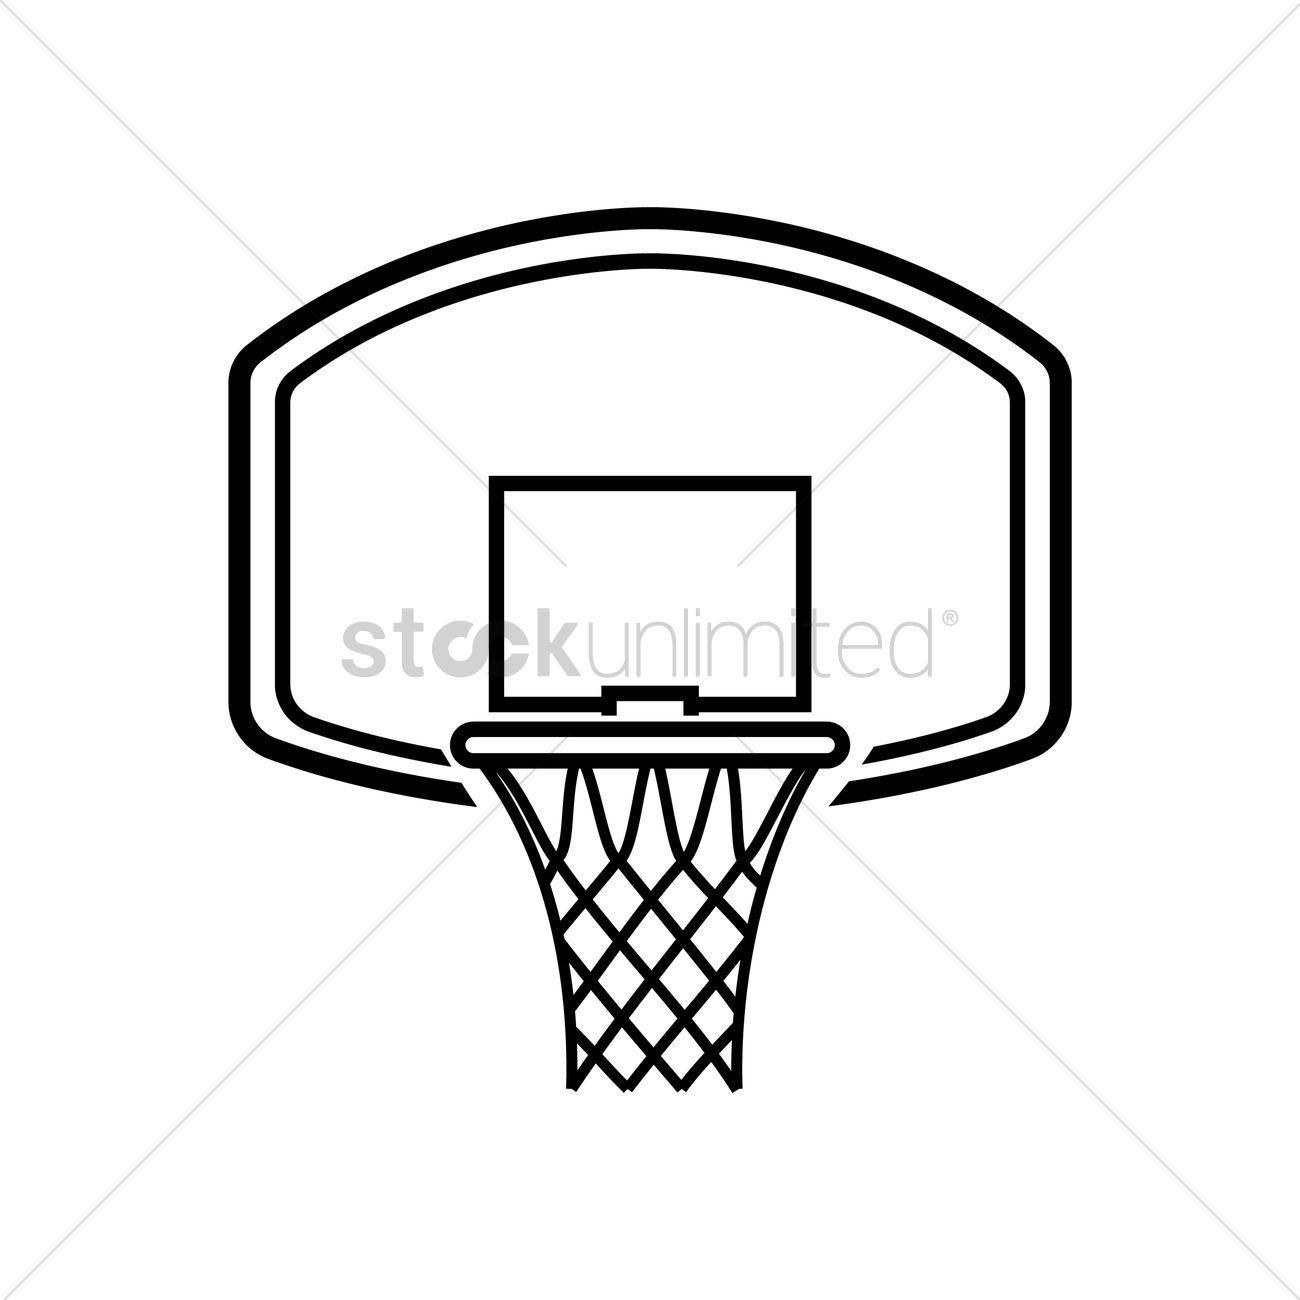 basketball hoop vector image 1979496 stockunlimited basketball goal clip art simple Full Basketball Goal No Background